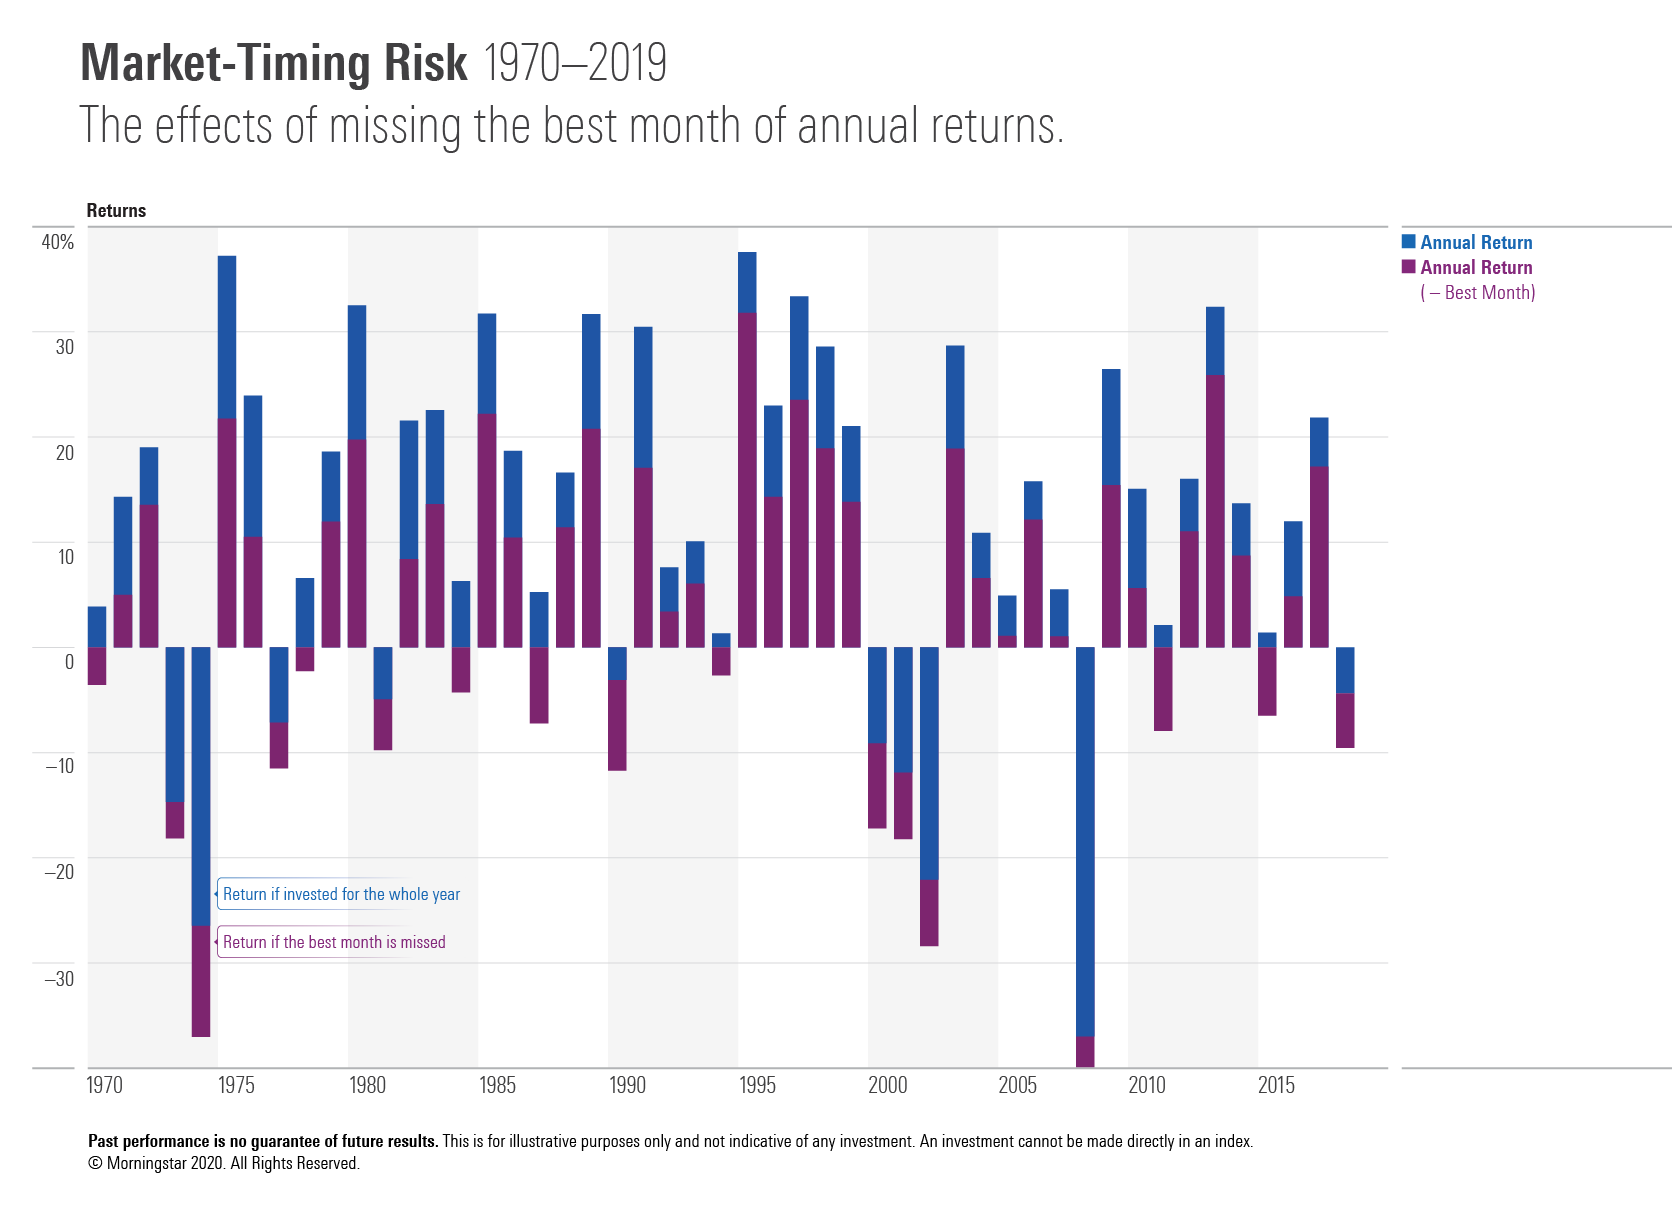 Market-timing risk